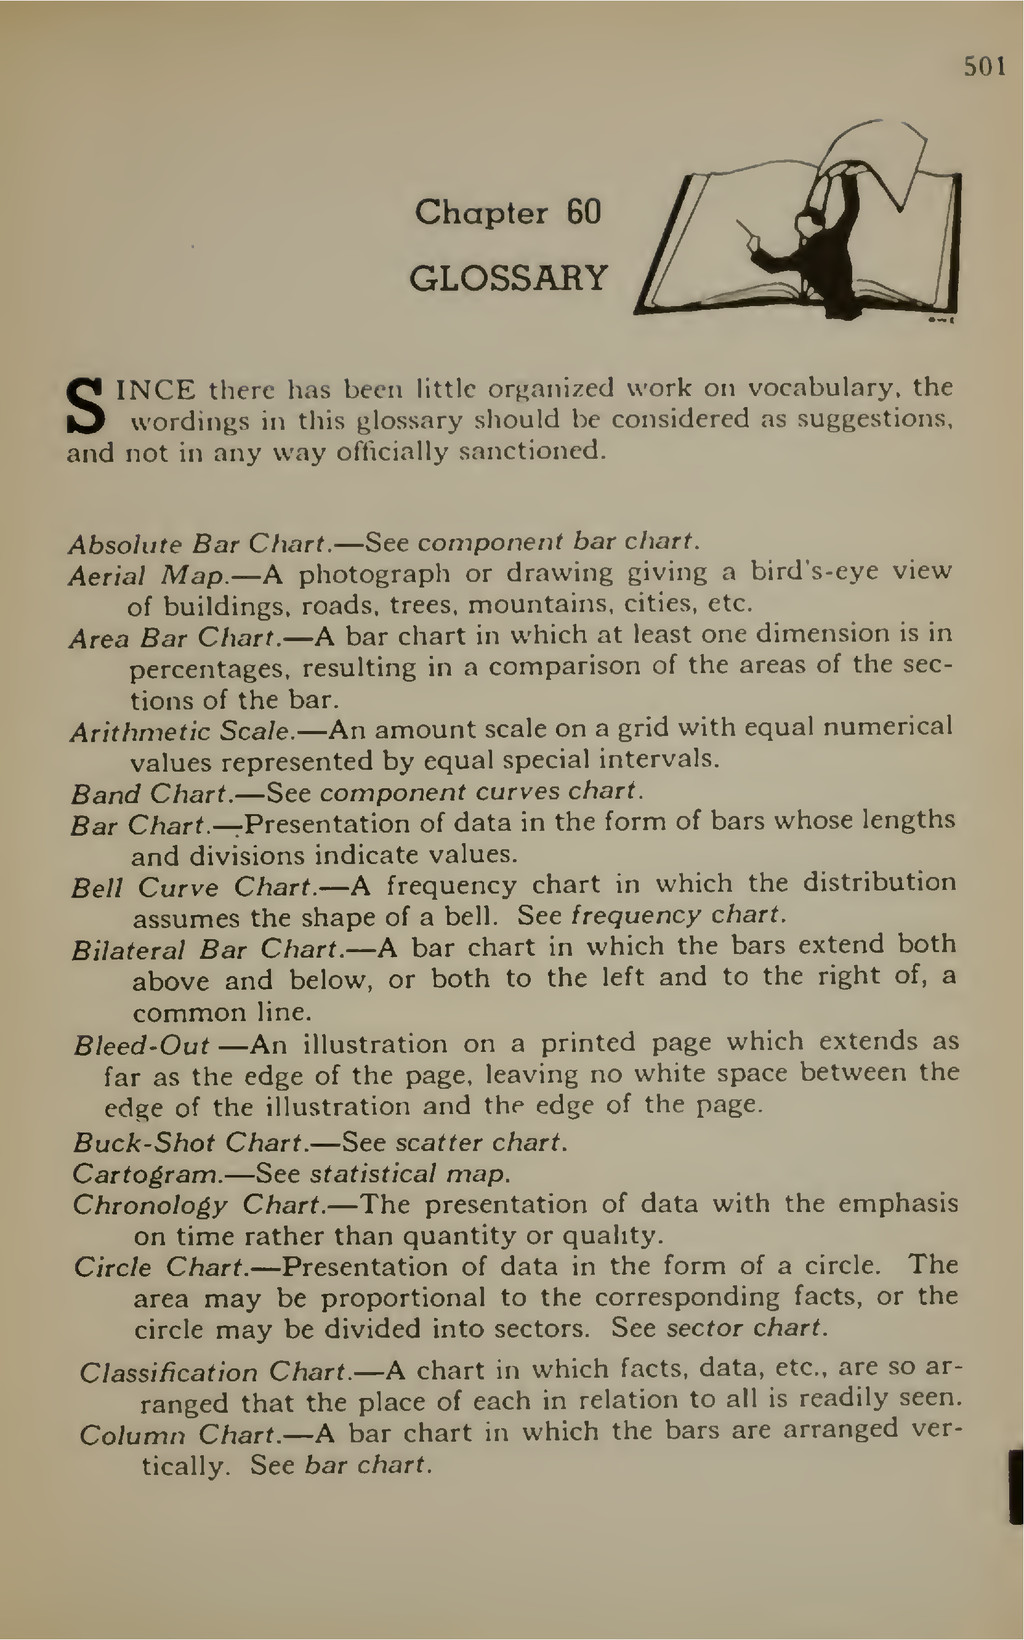 501 Chapter 60 GLOSSARY SINCE there has been li...